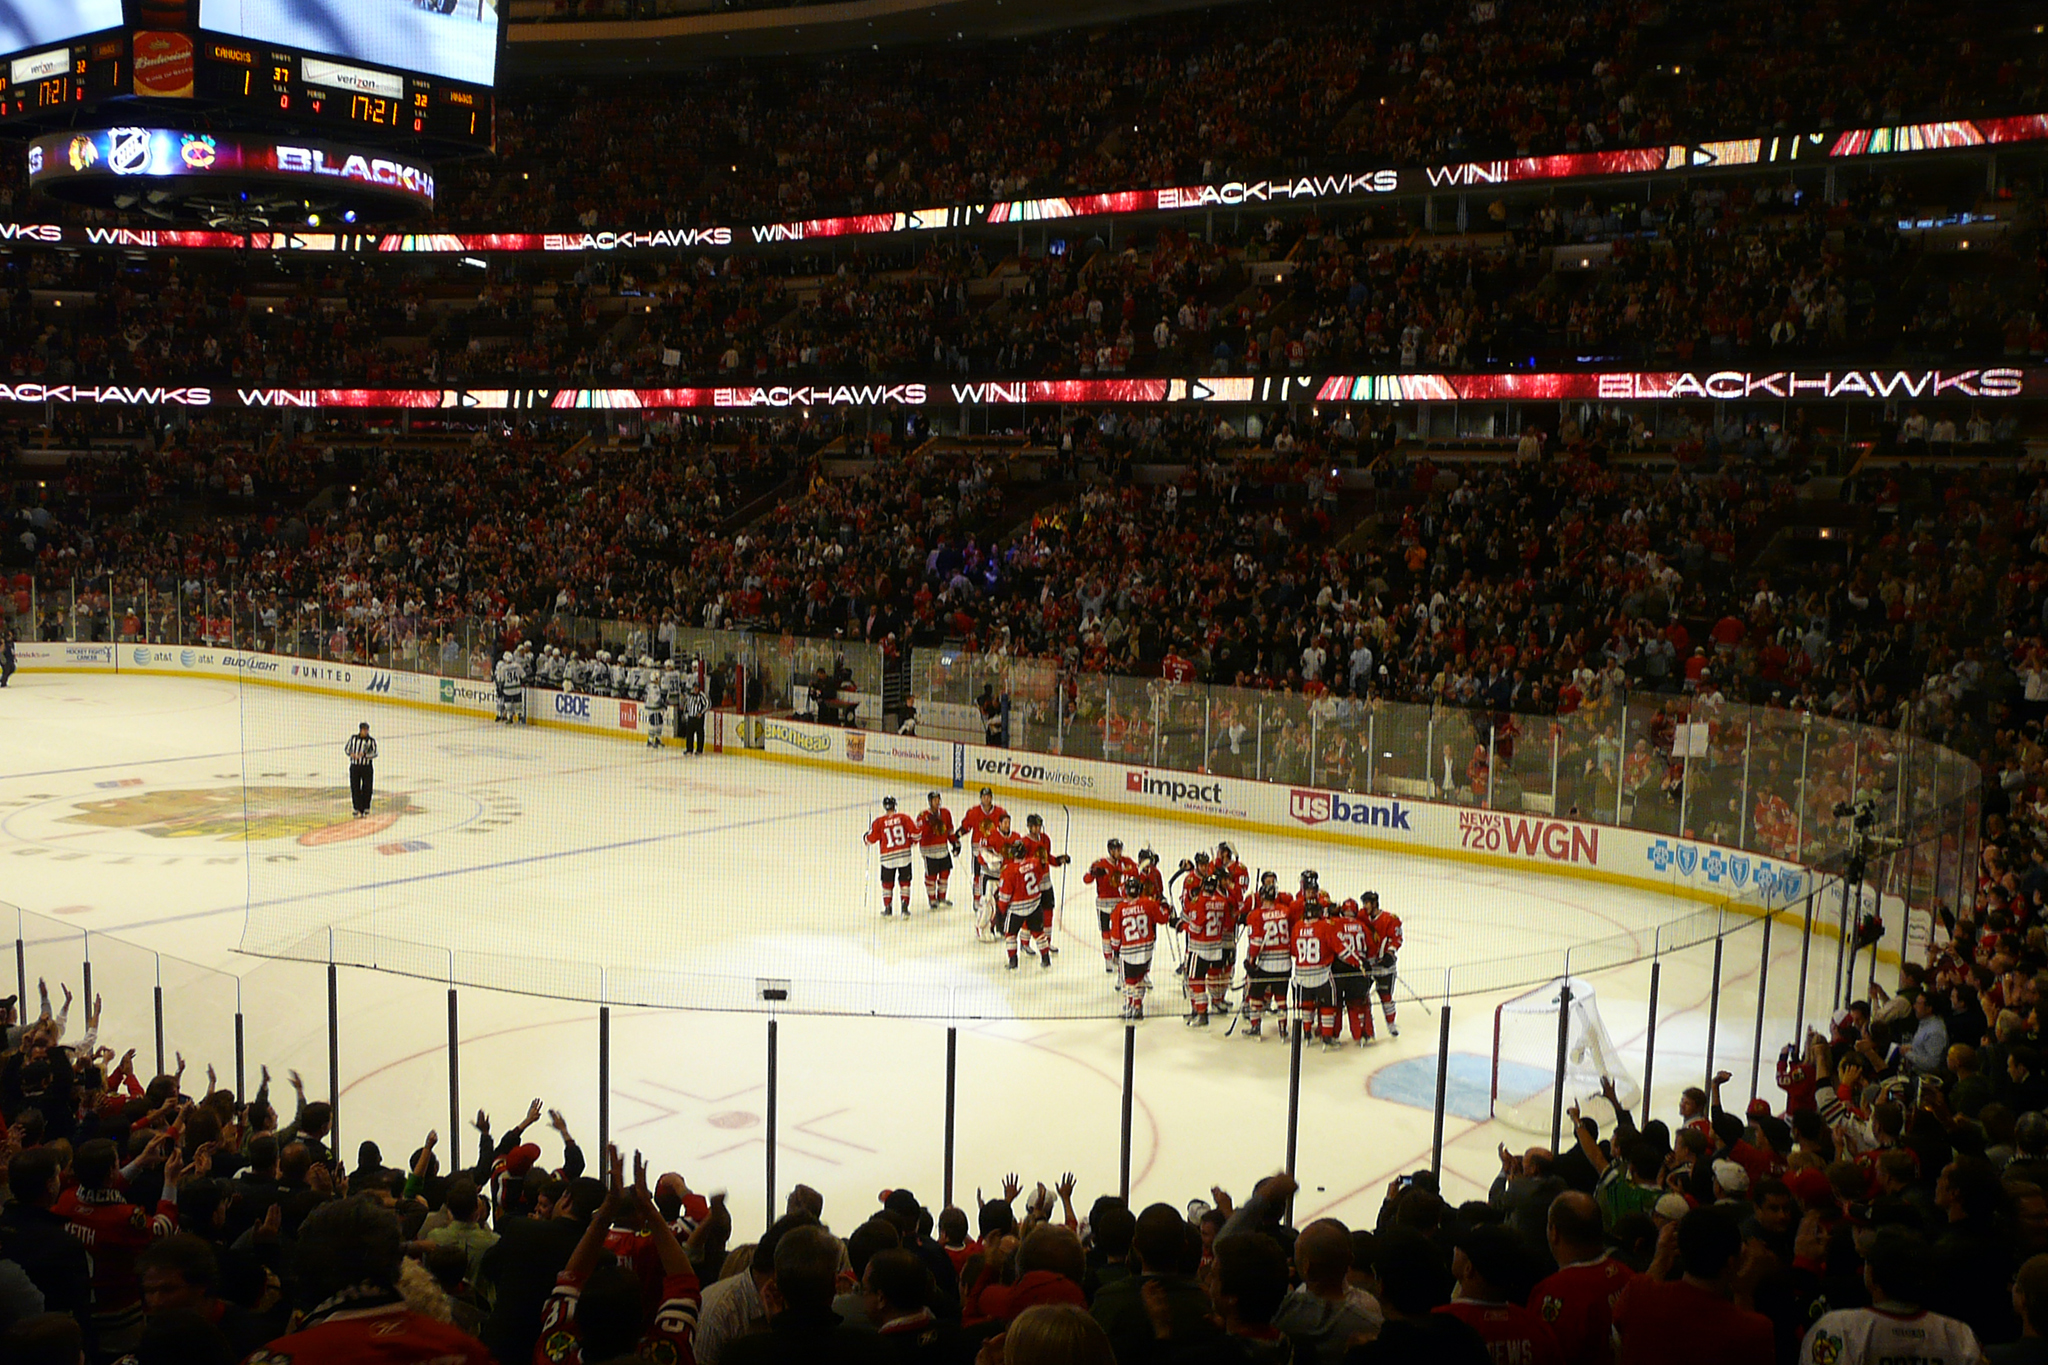 Chicago Blackhawks: A guide for the hockey fan